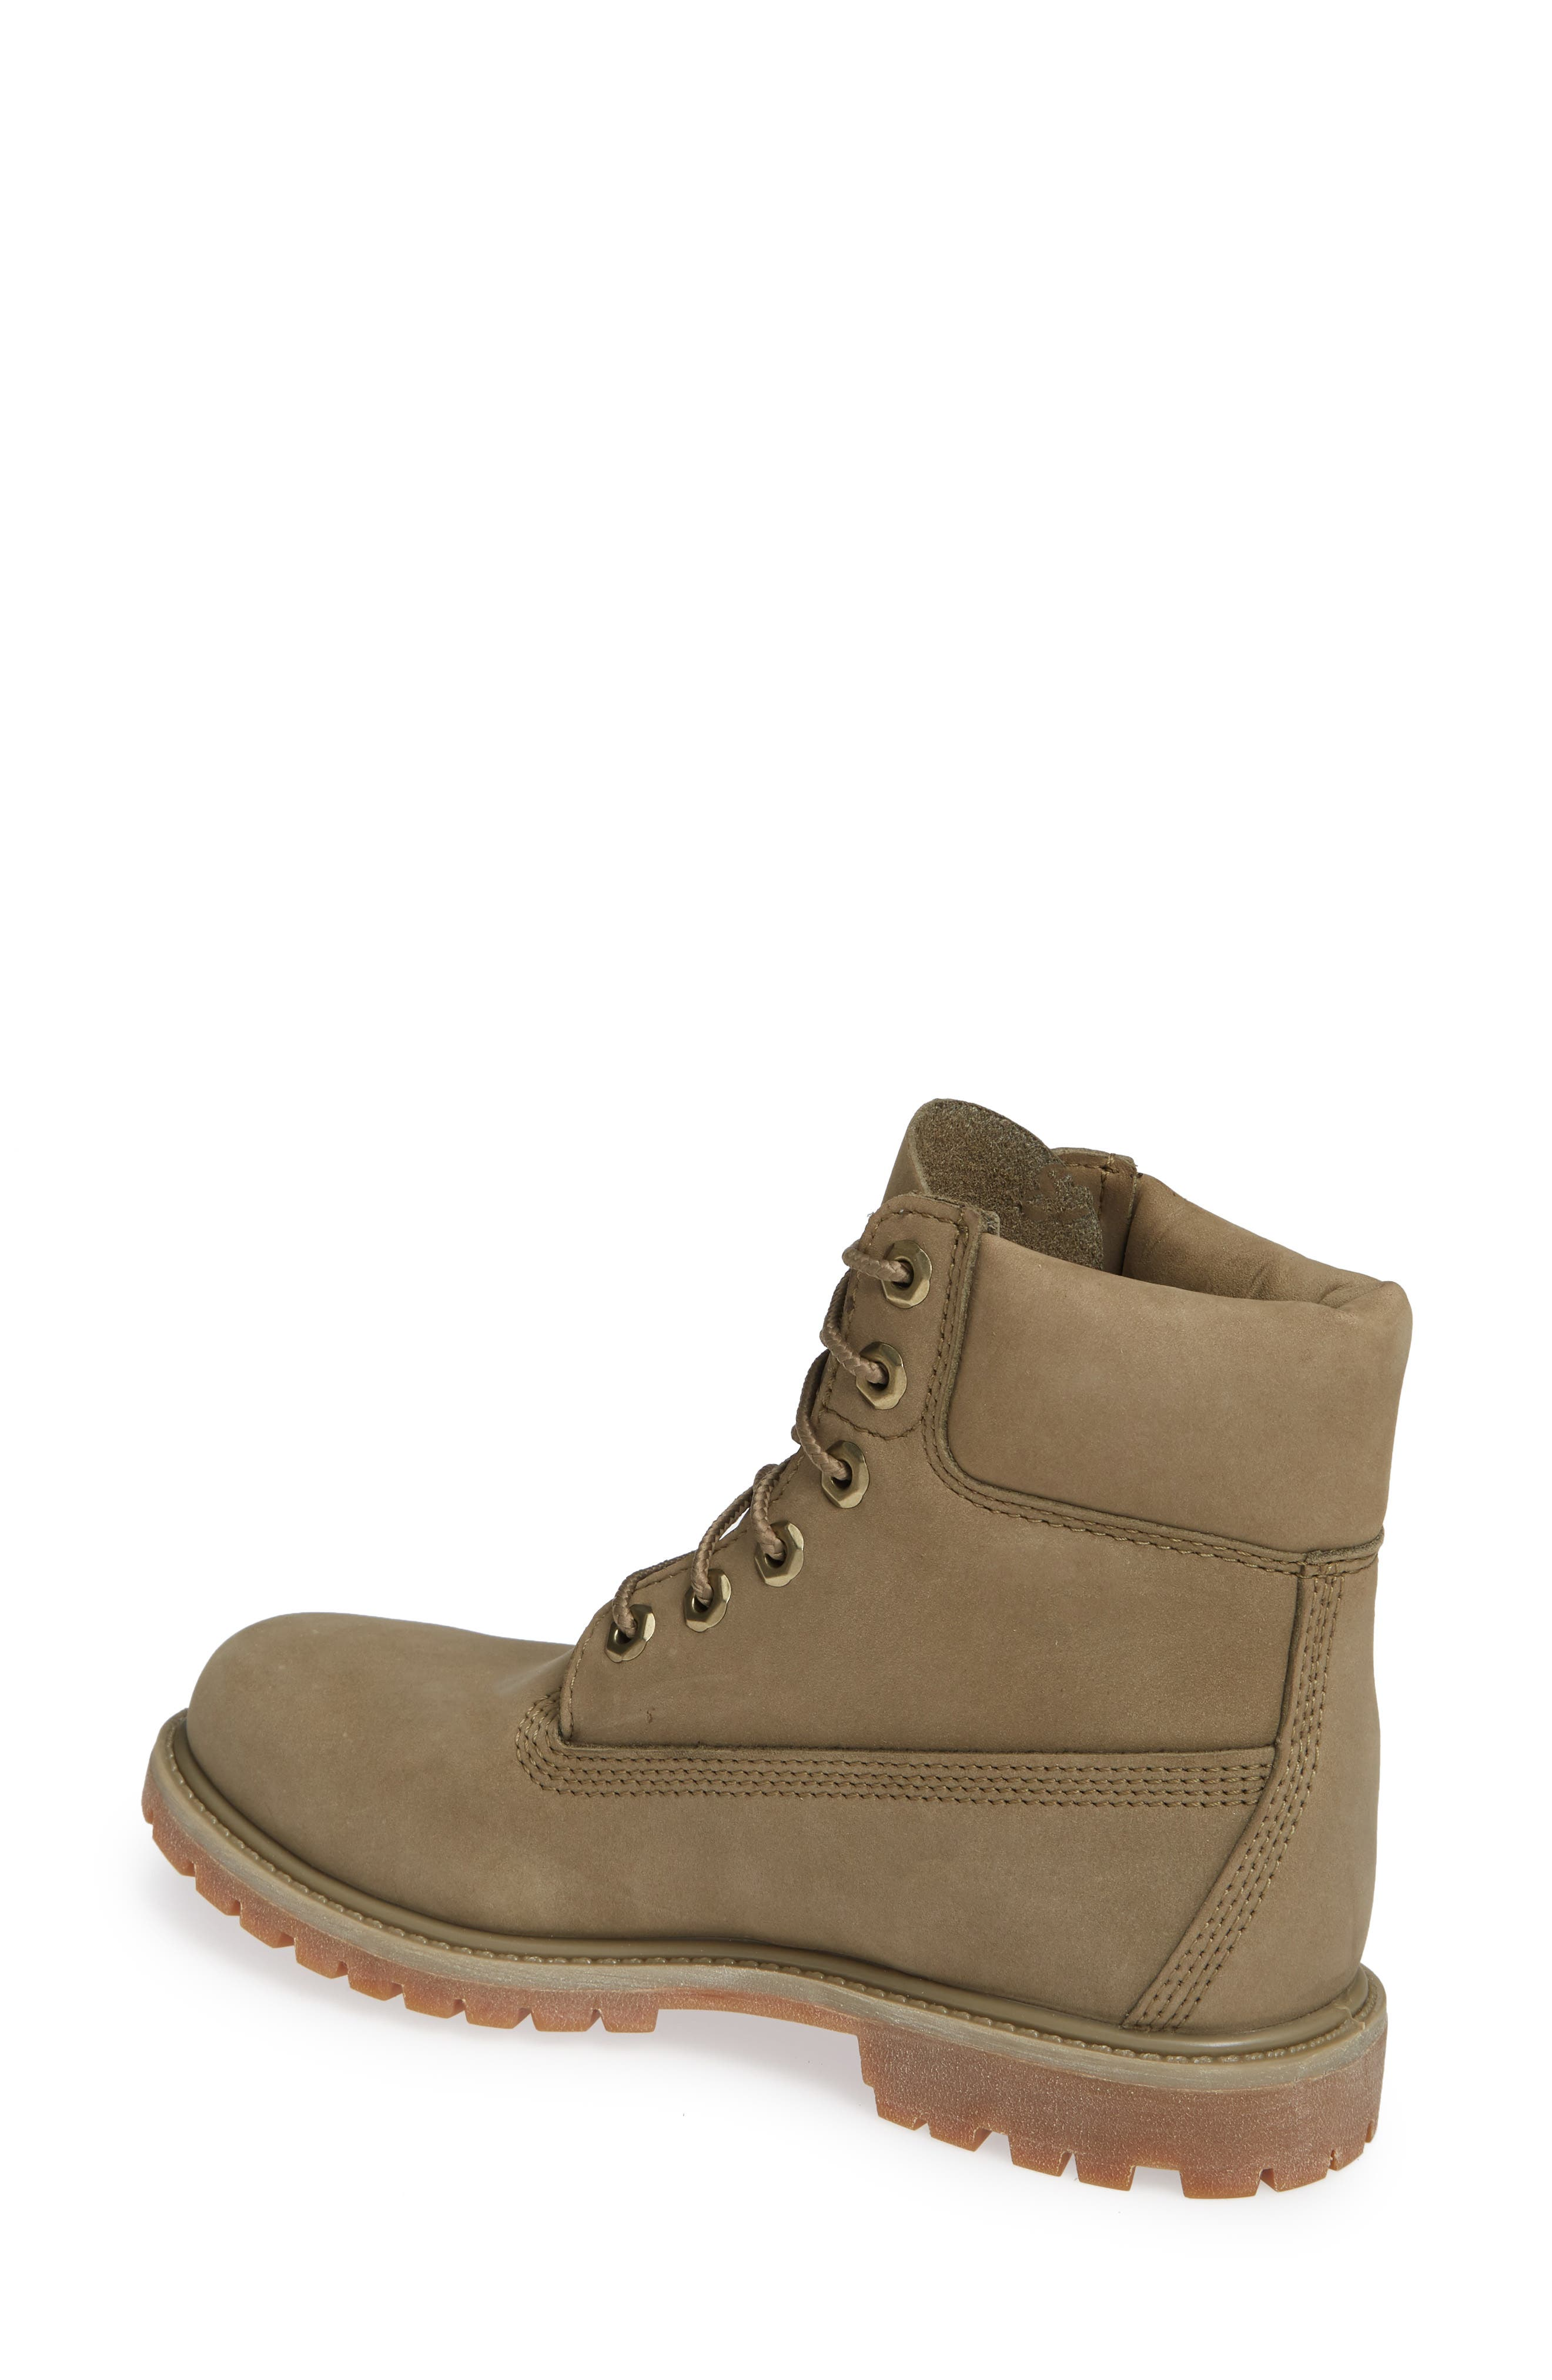 '6 Inch Premium' Waterproof Boot,                             Alternate thumbnail 2, color,                             COVERT GREEN LEATHER